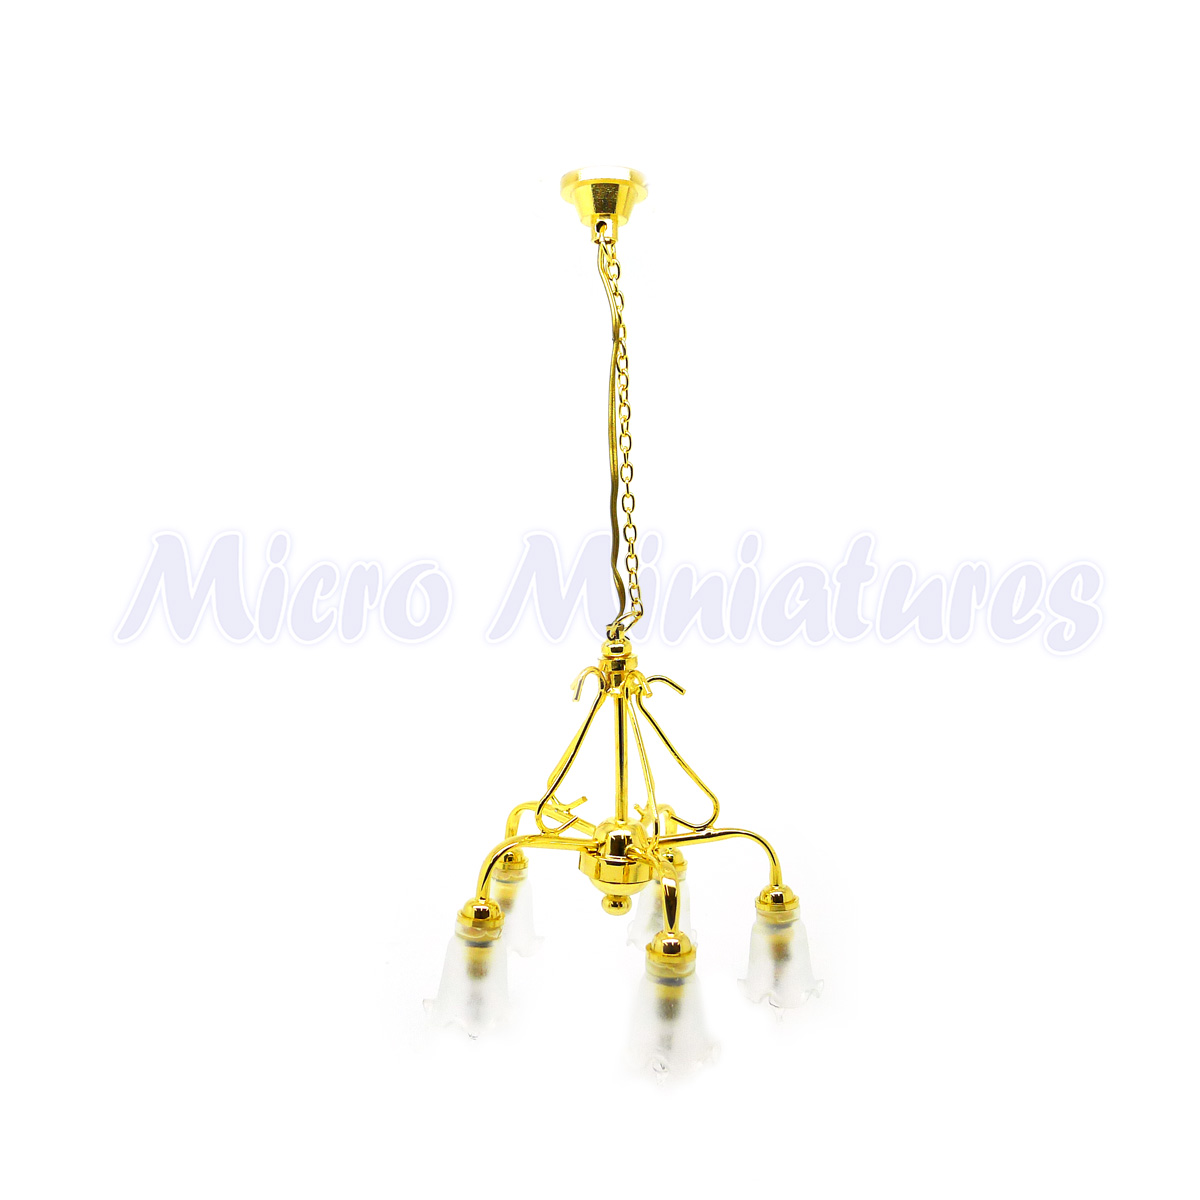 Dolls House 4 Down Arm Tulip Shade Chandelier 1 12 Scale